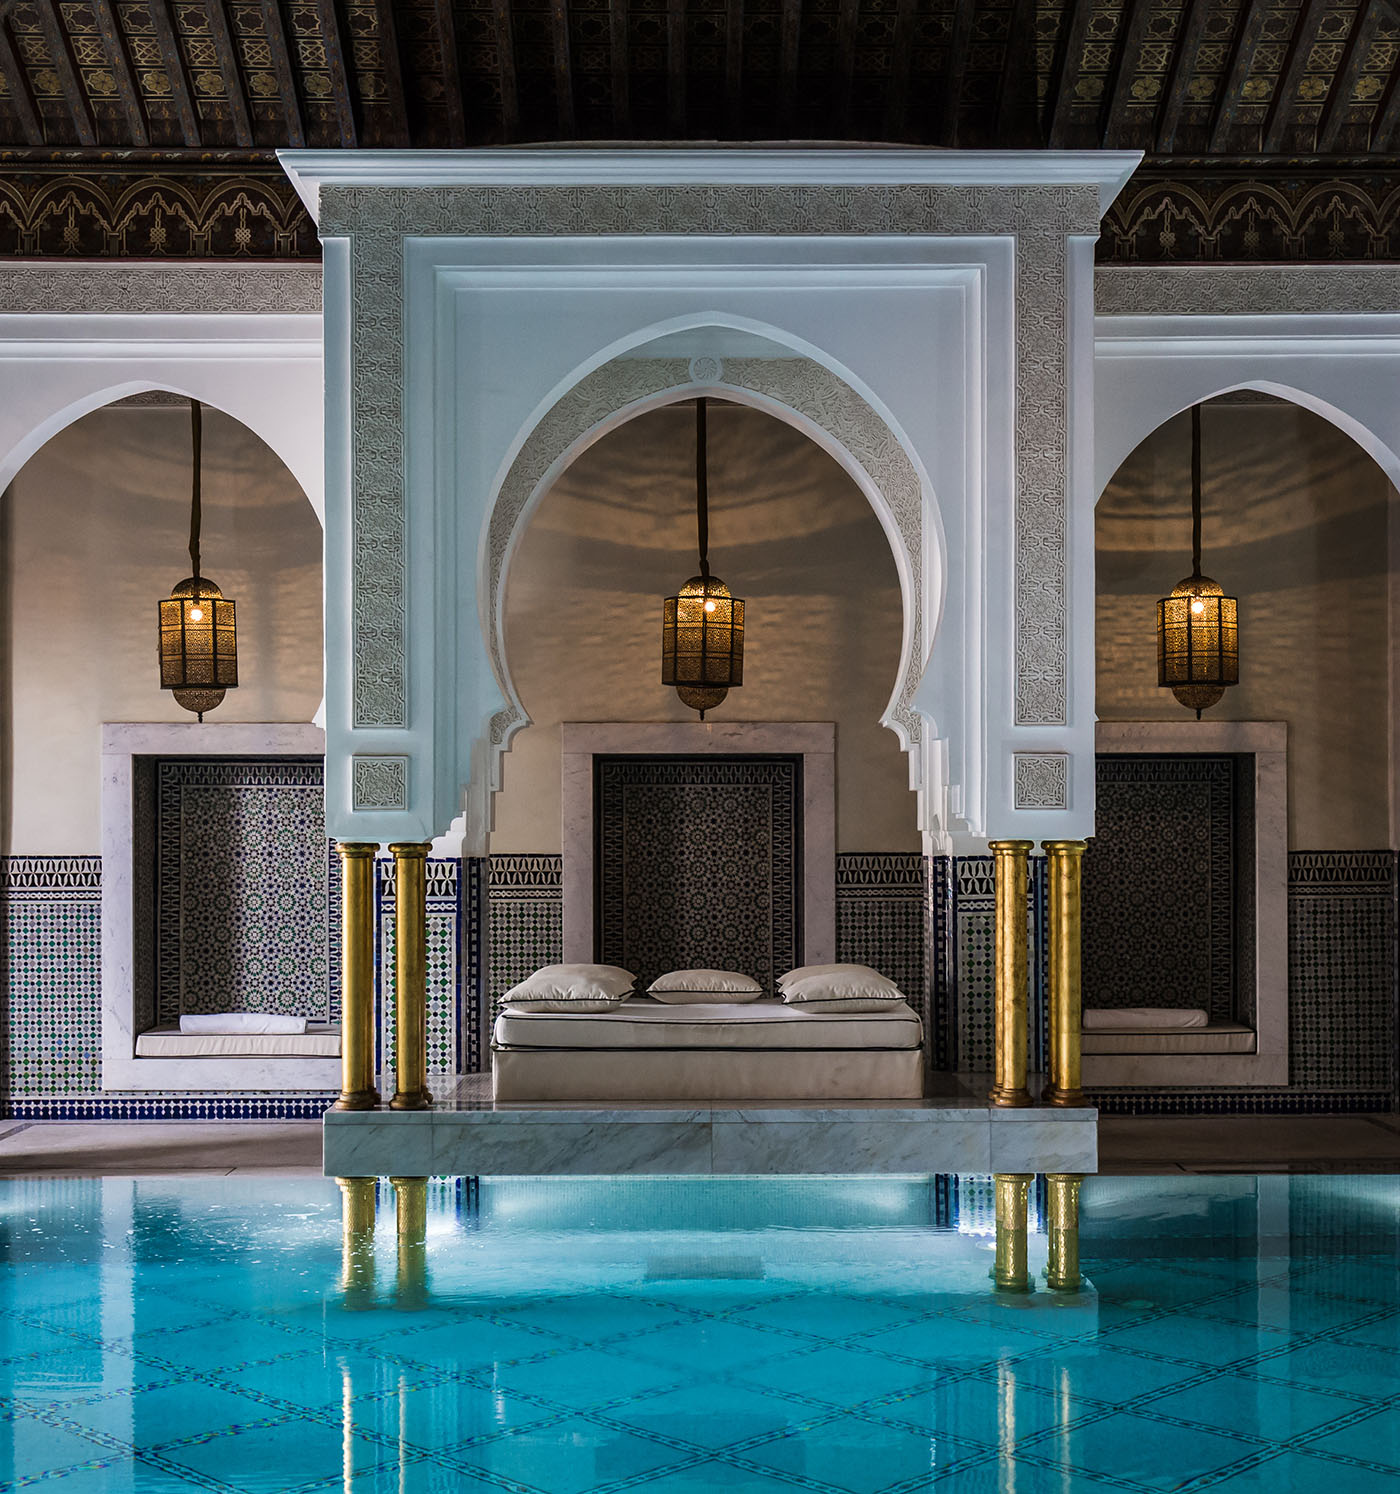 Marrakech: Travel Guide